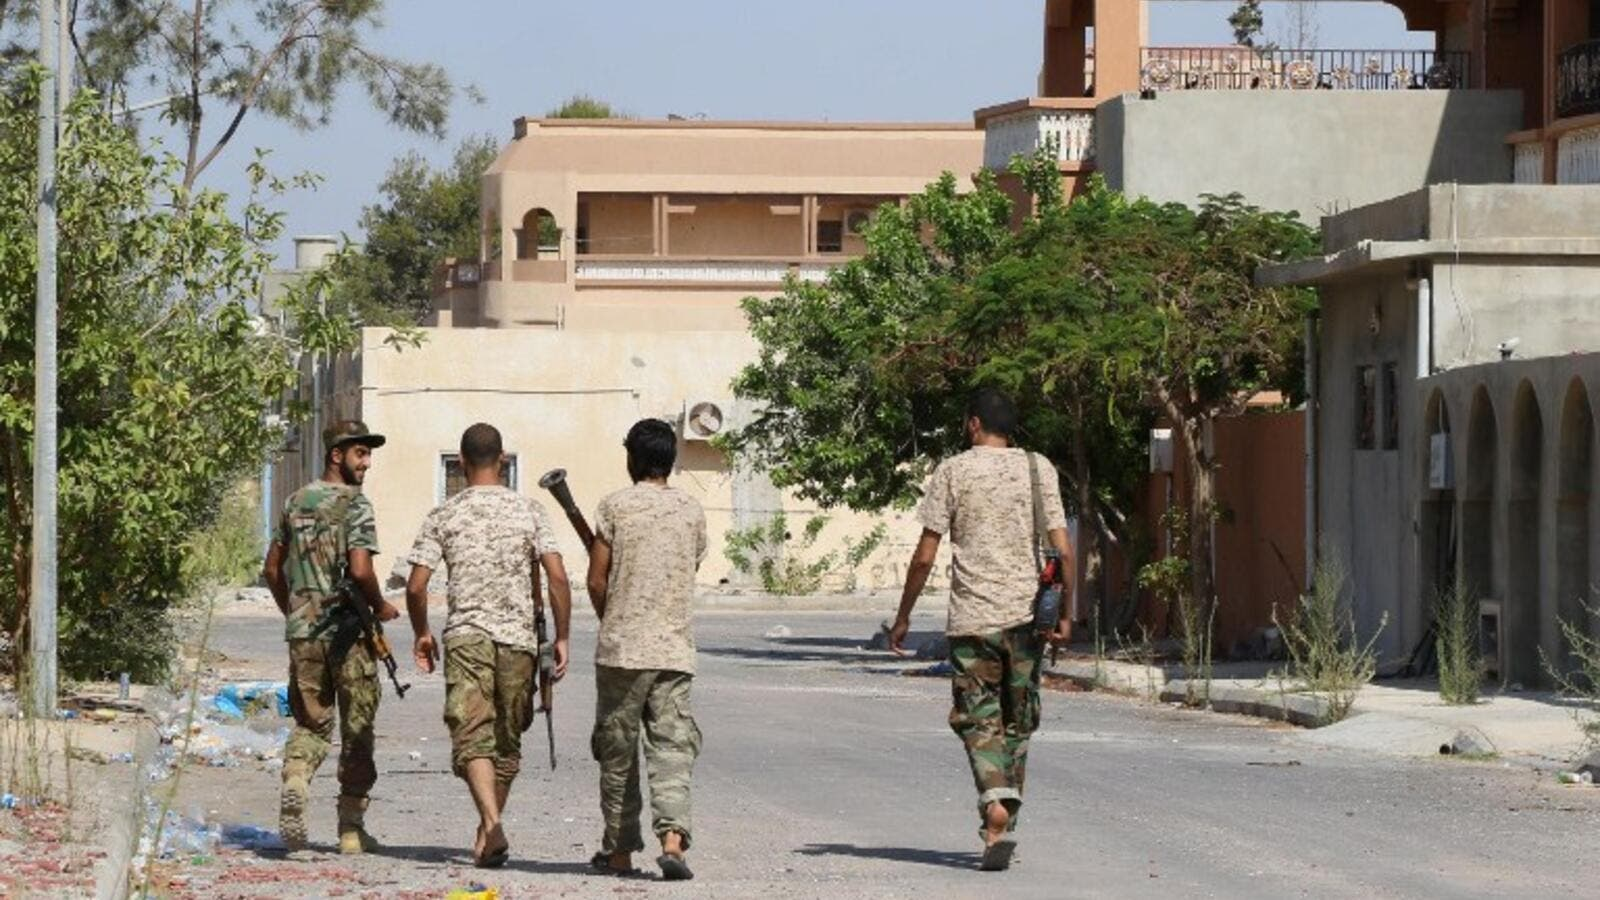 Fighters from the pro-government forces loyal to Libya's Government of National Unity (GNA) walk on August 3, 2016 in Sirte during an operation against Daesh. (AFP/Mahmud Turkia)